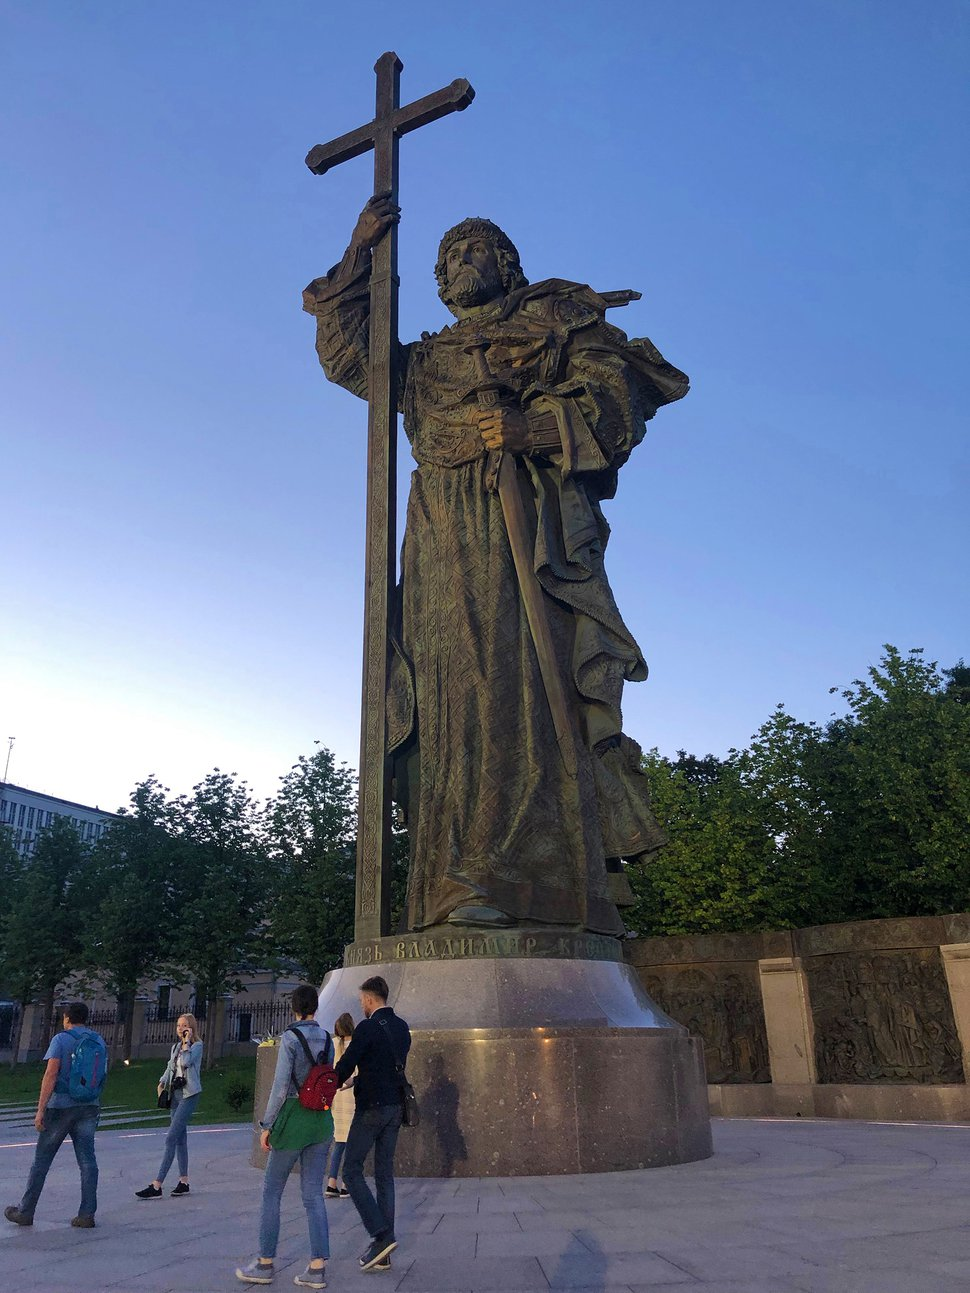 (Michael Stack | Special to The Salt Lake Tribune) Recently erected statue of Prince Vladimir, who brought the Orthodox faith to Russia, near the entrance to the Kremlin in Moscow.